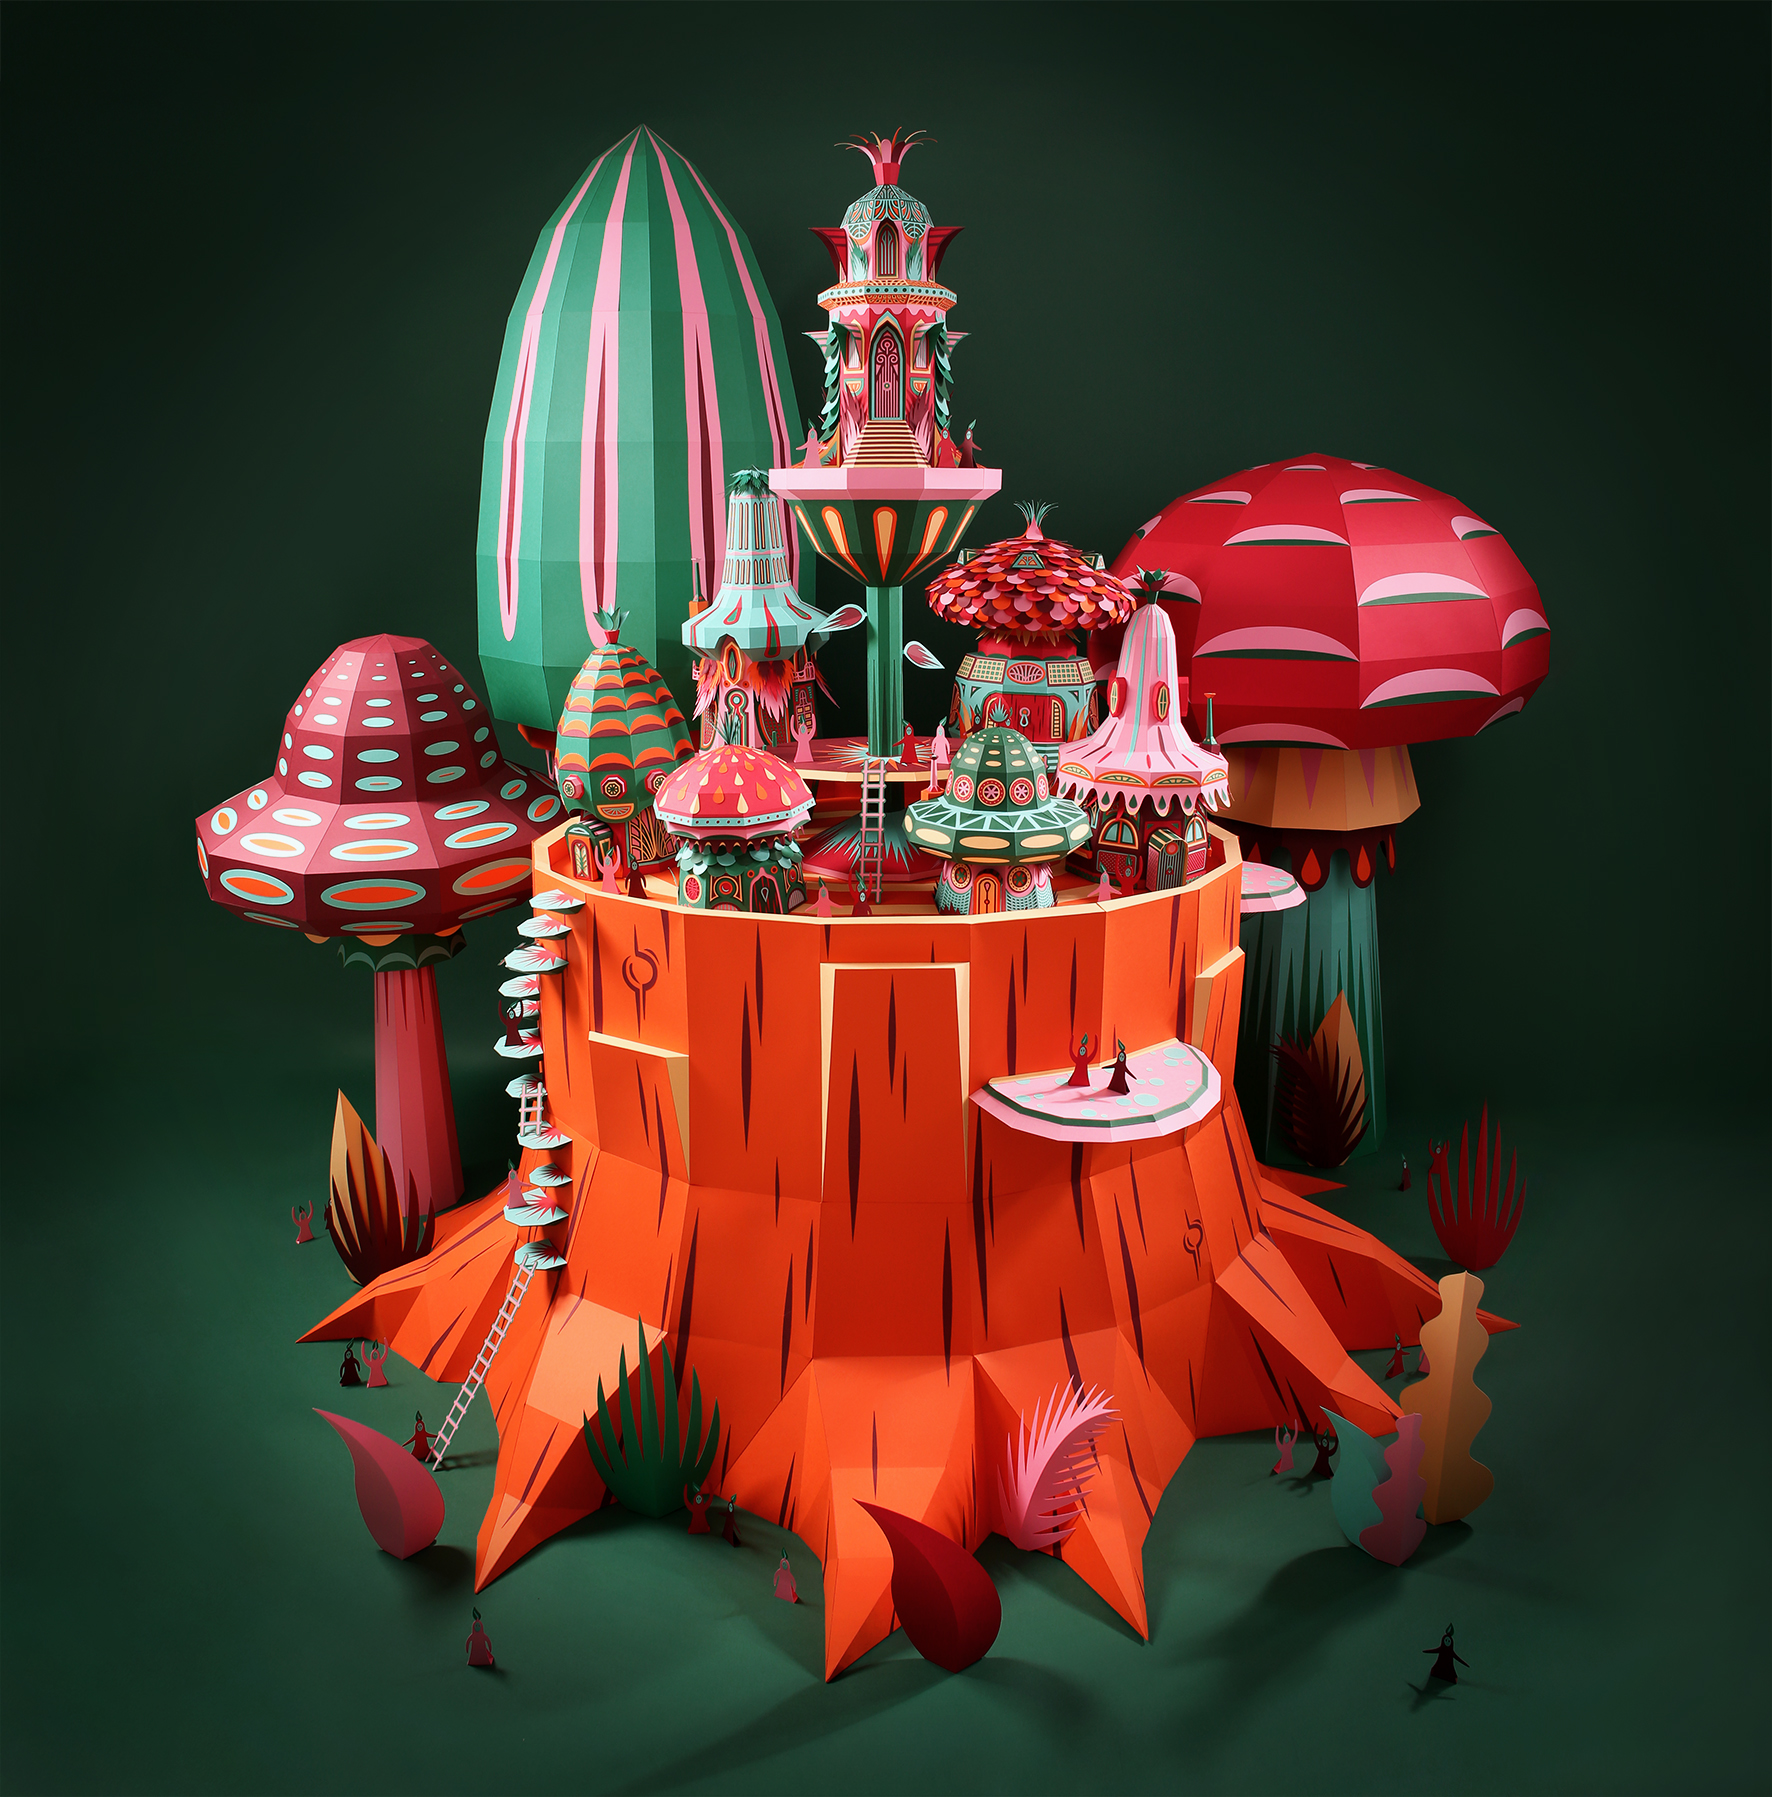 Fantastic Miniature Worlds of Nature Bursting with Color for Hermès Window Display in Dubai - Mushroom Full